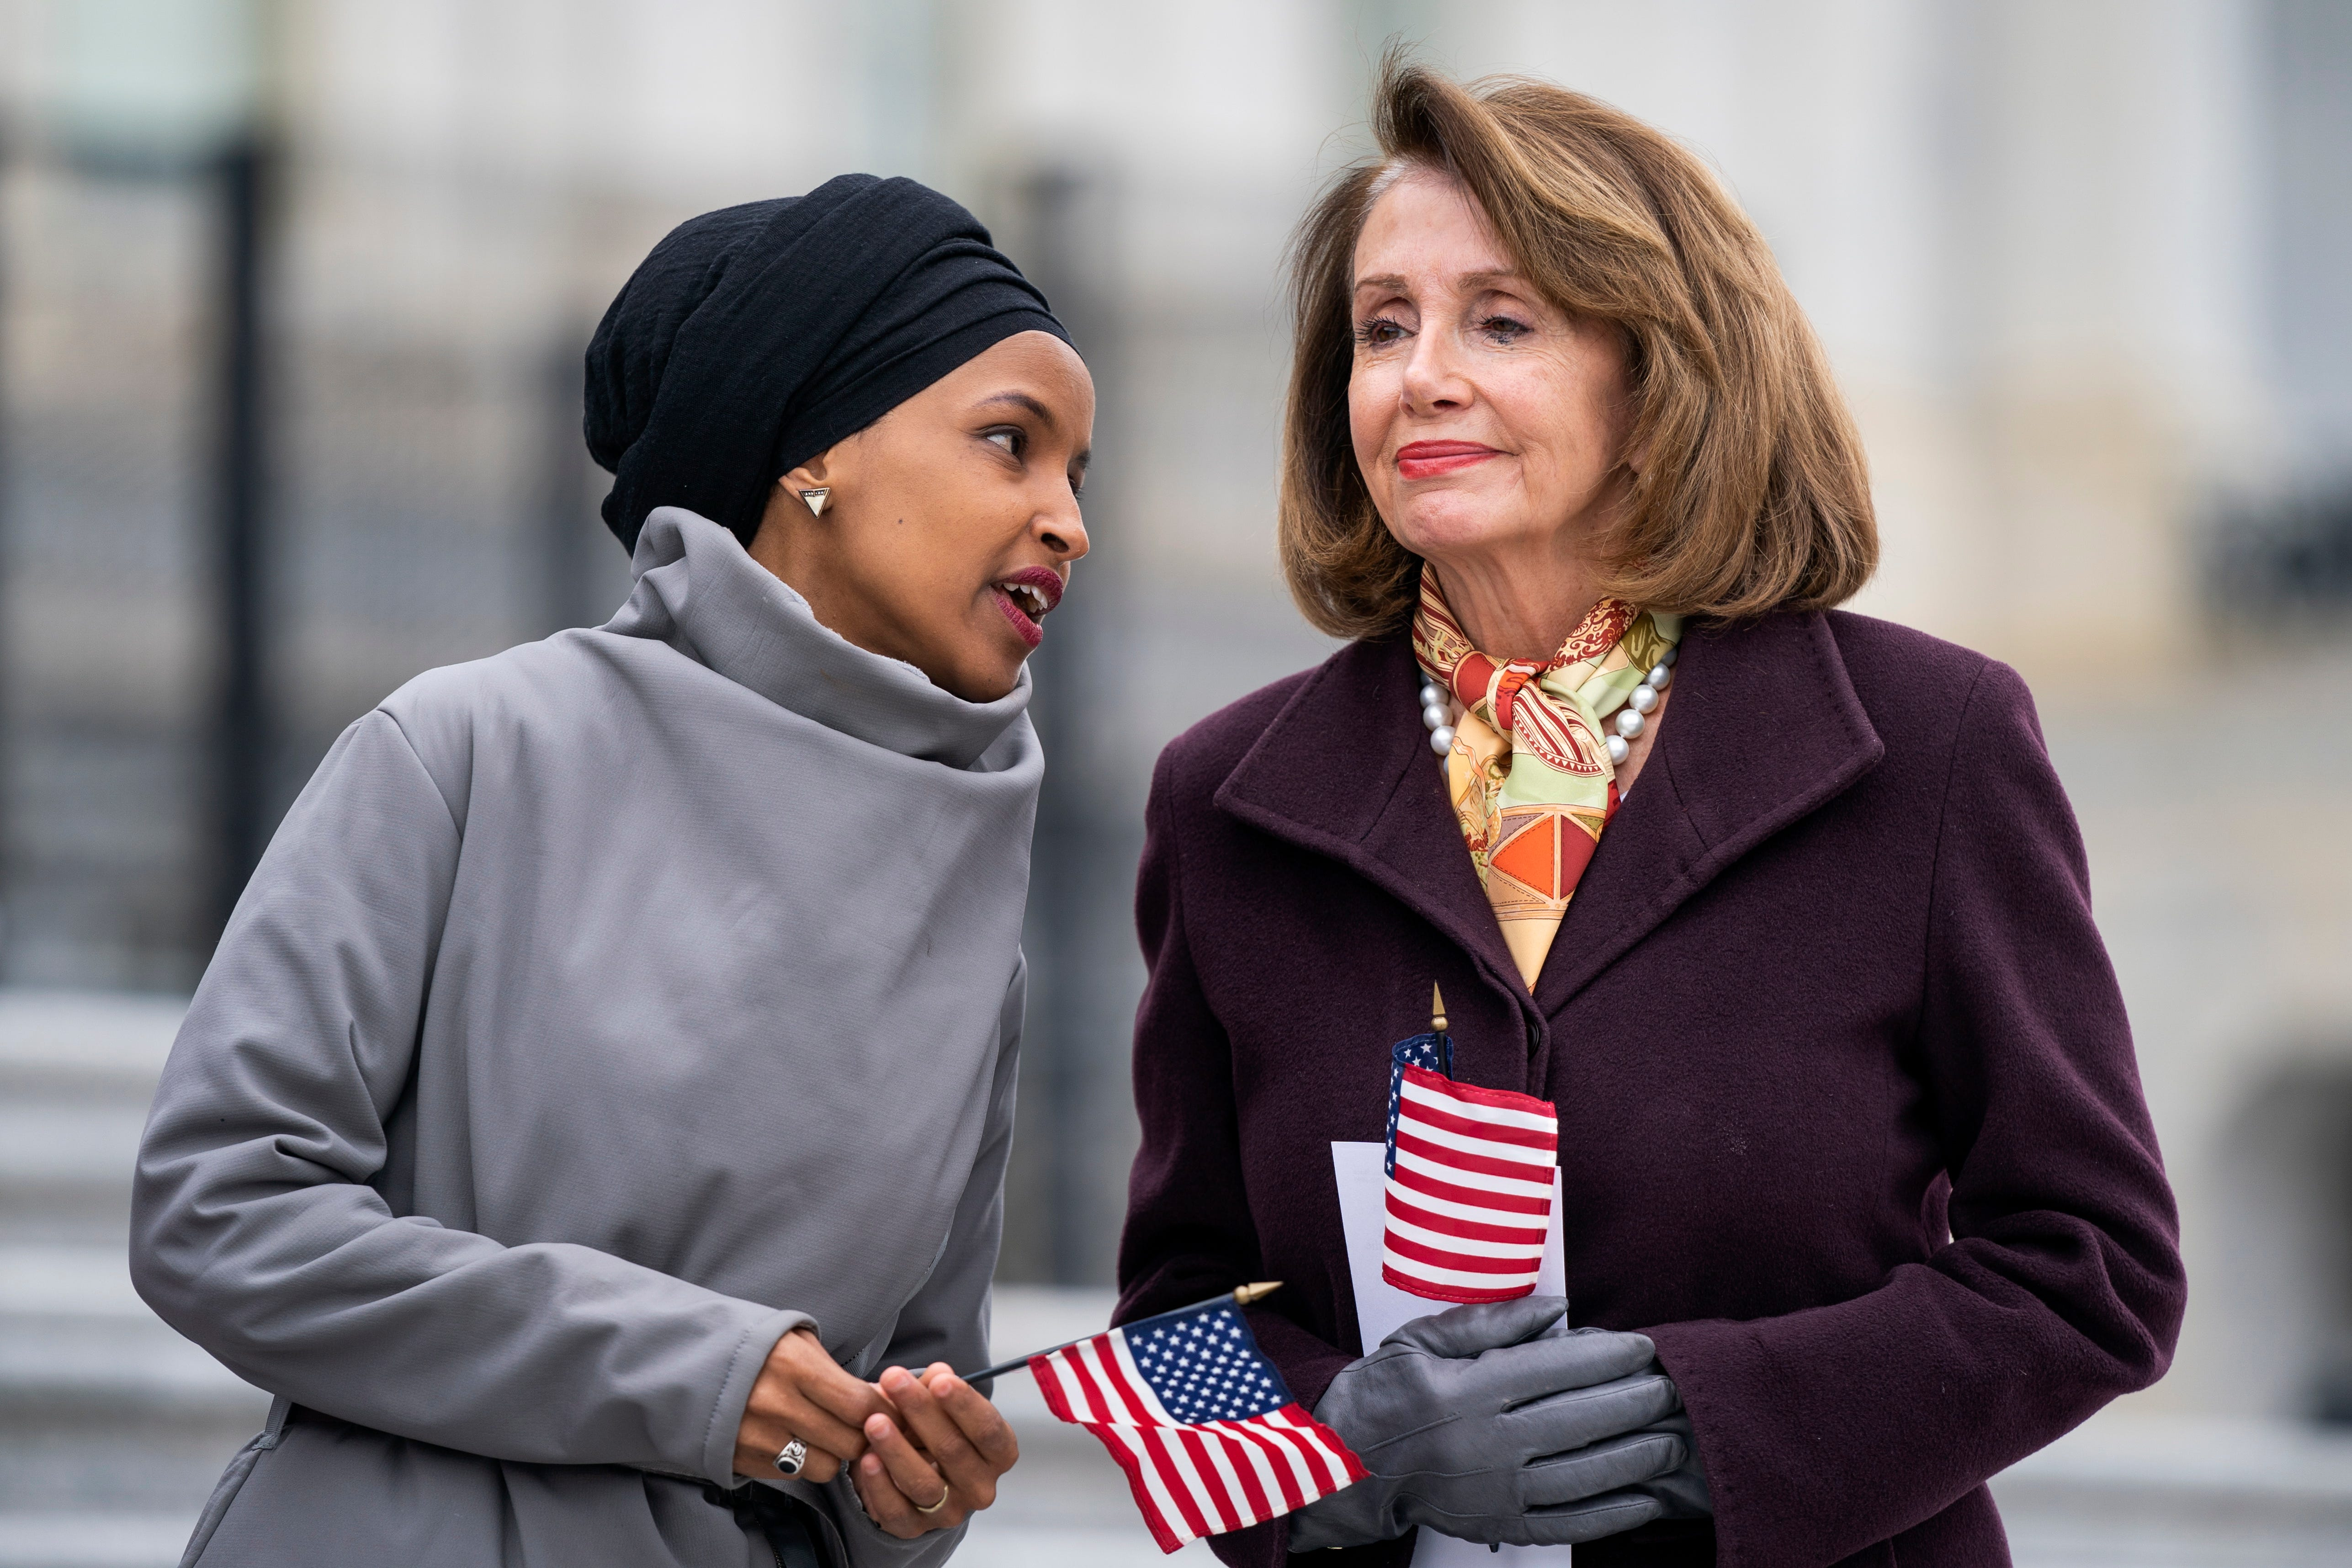 'This is endangering lives': Ilhan Omar claims spike in death threats after Trump tweet